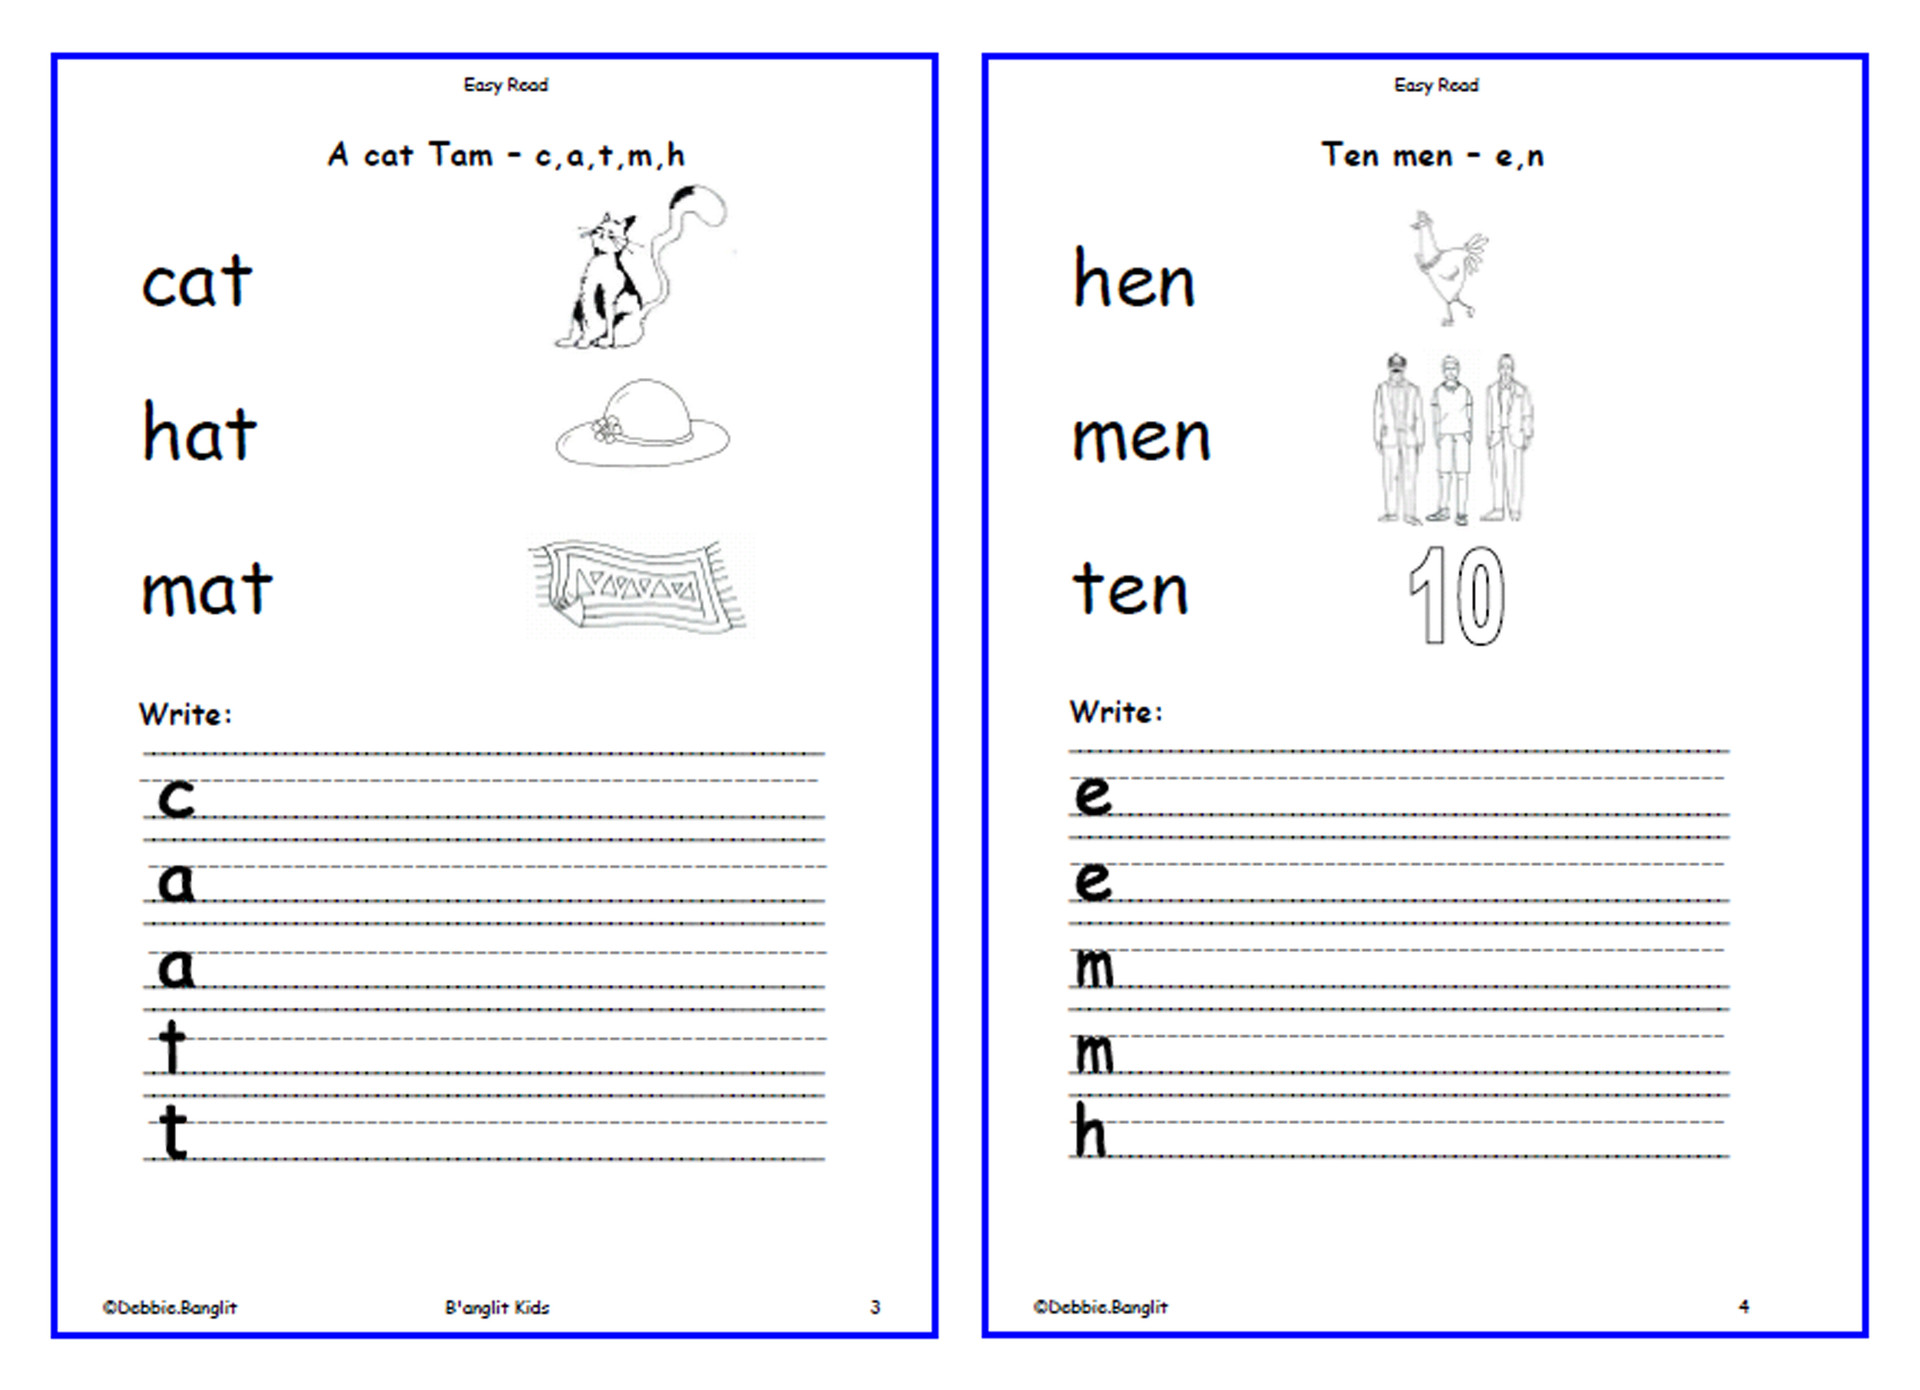 Easy Read - worksheets 3 & 4